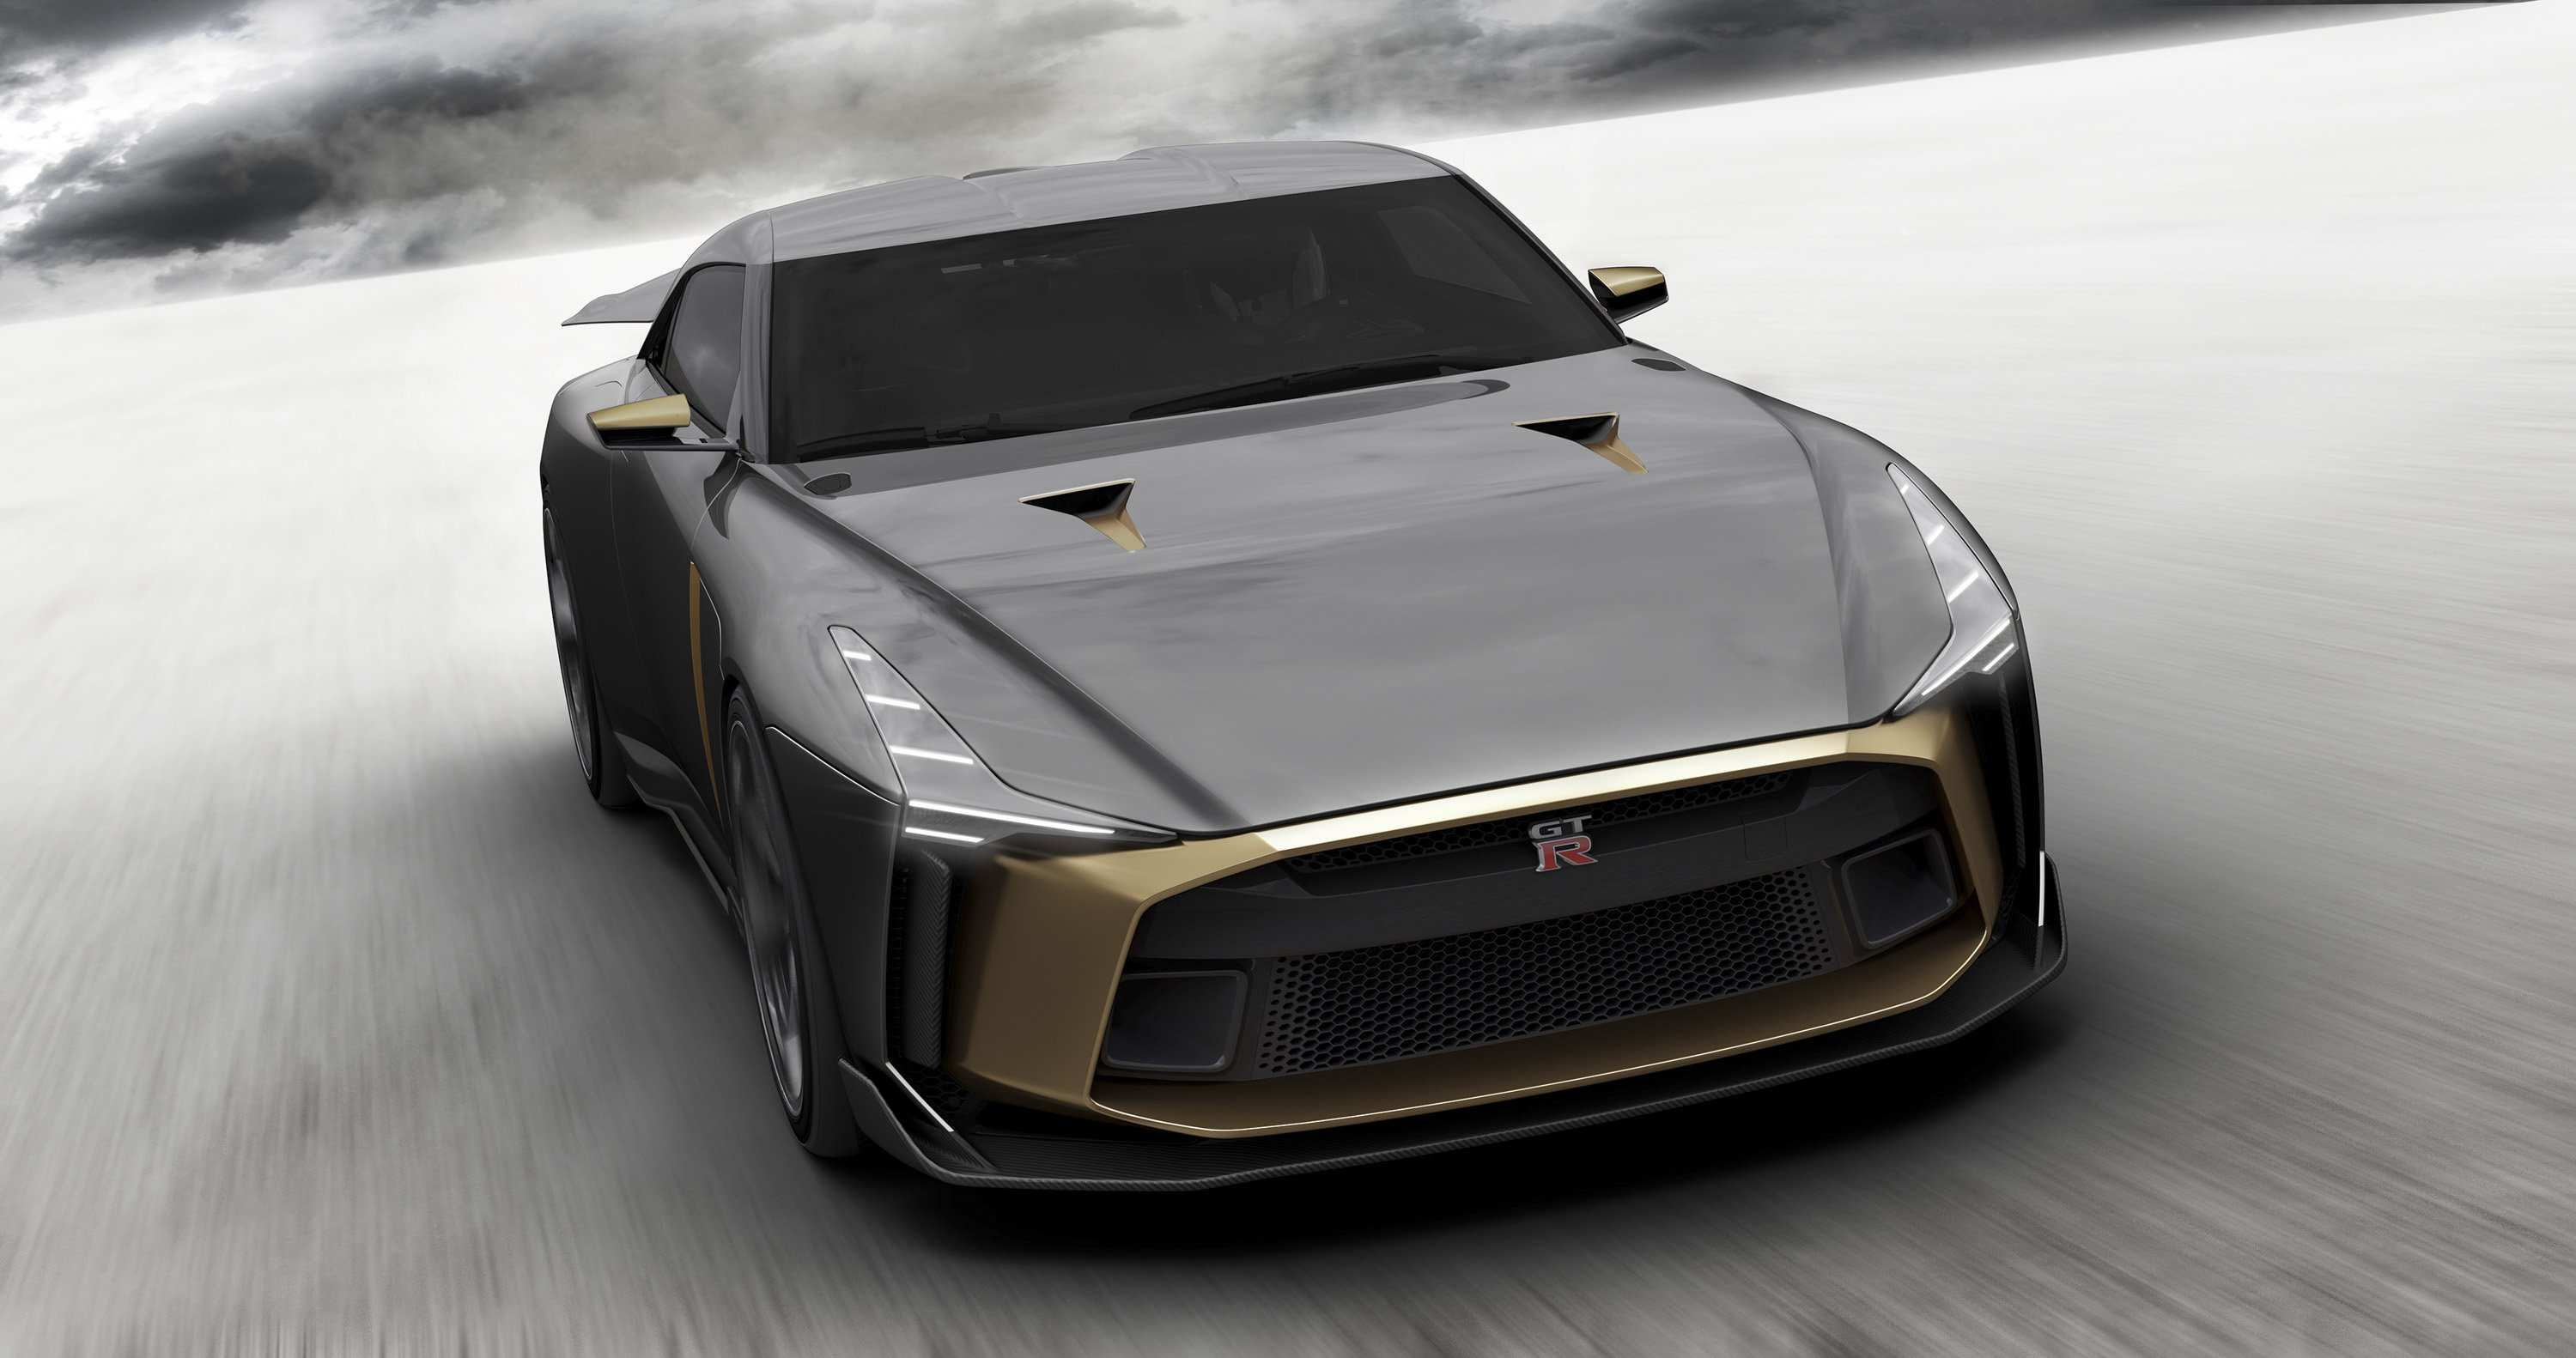 65 Concept of 2020 Nissan Gtr R36 Specs Prices with 2020 Nissan Gtr R36 Specs